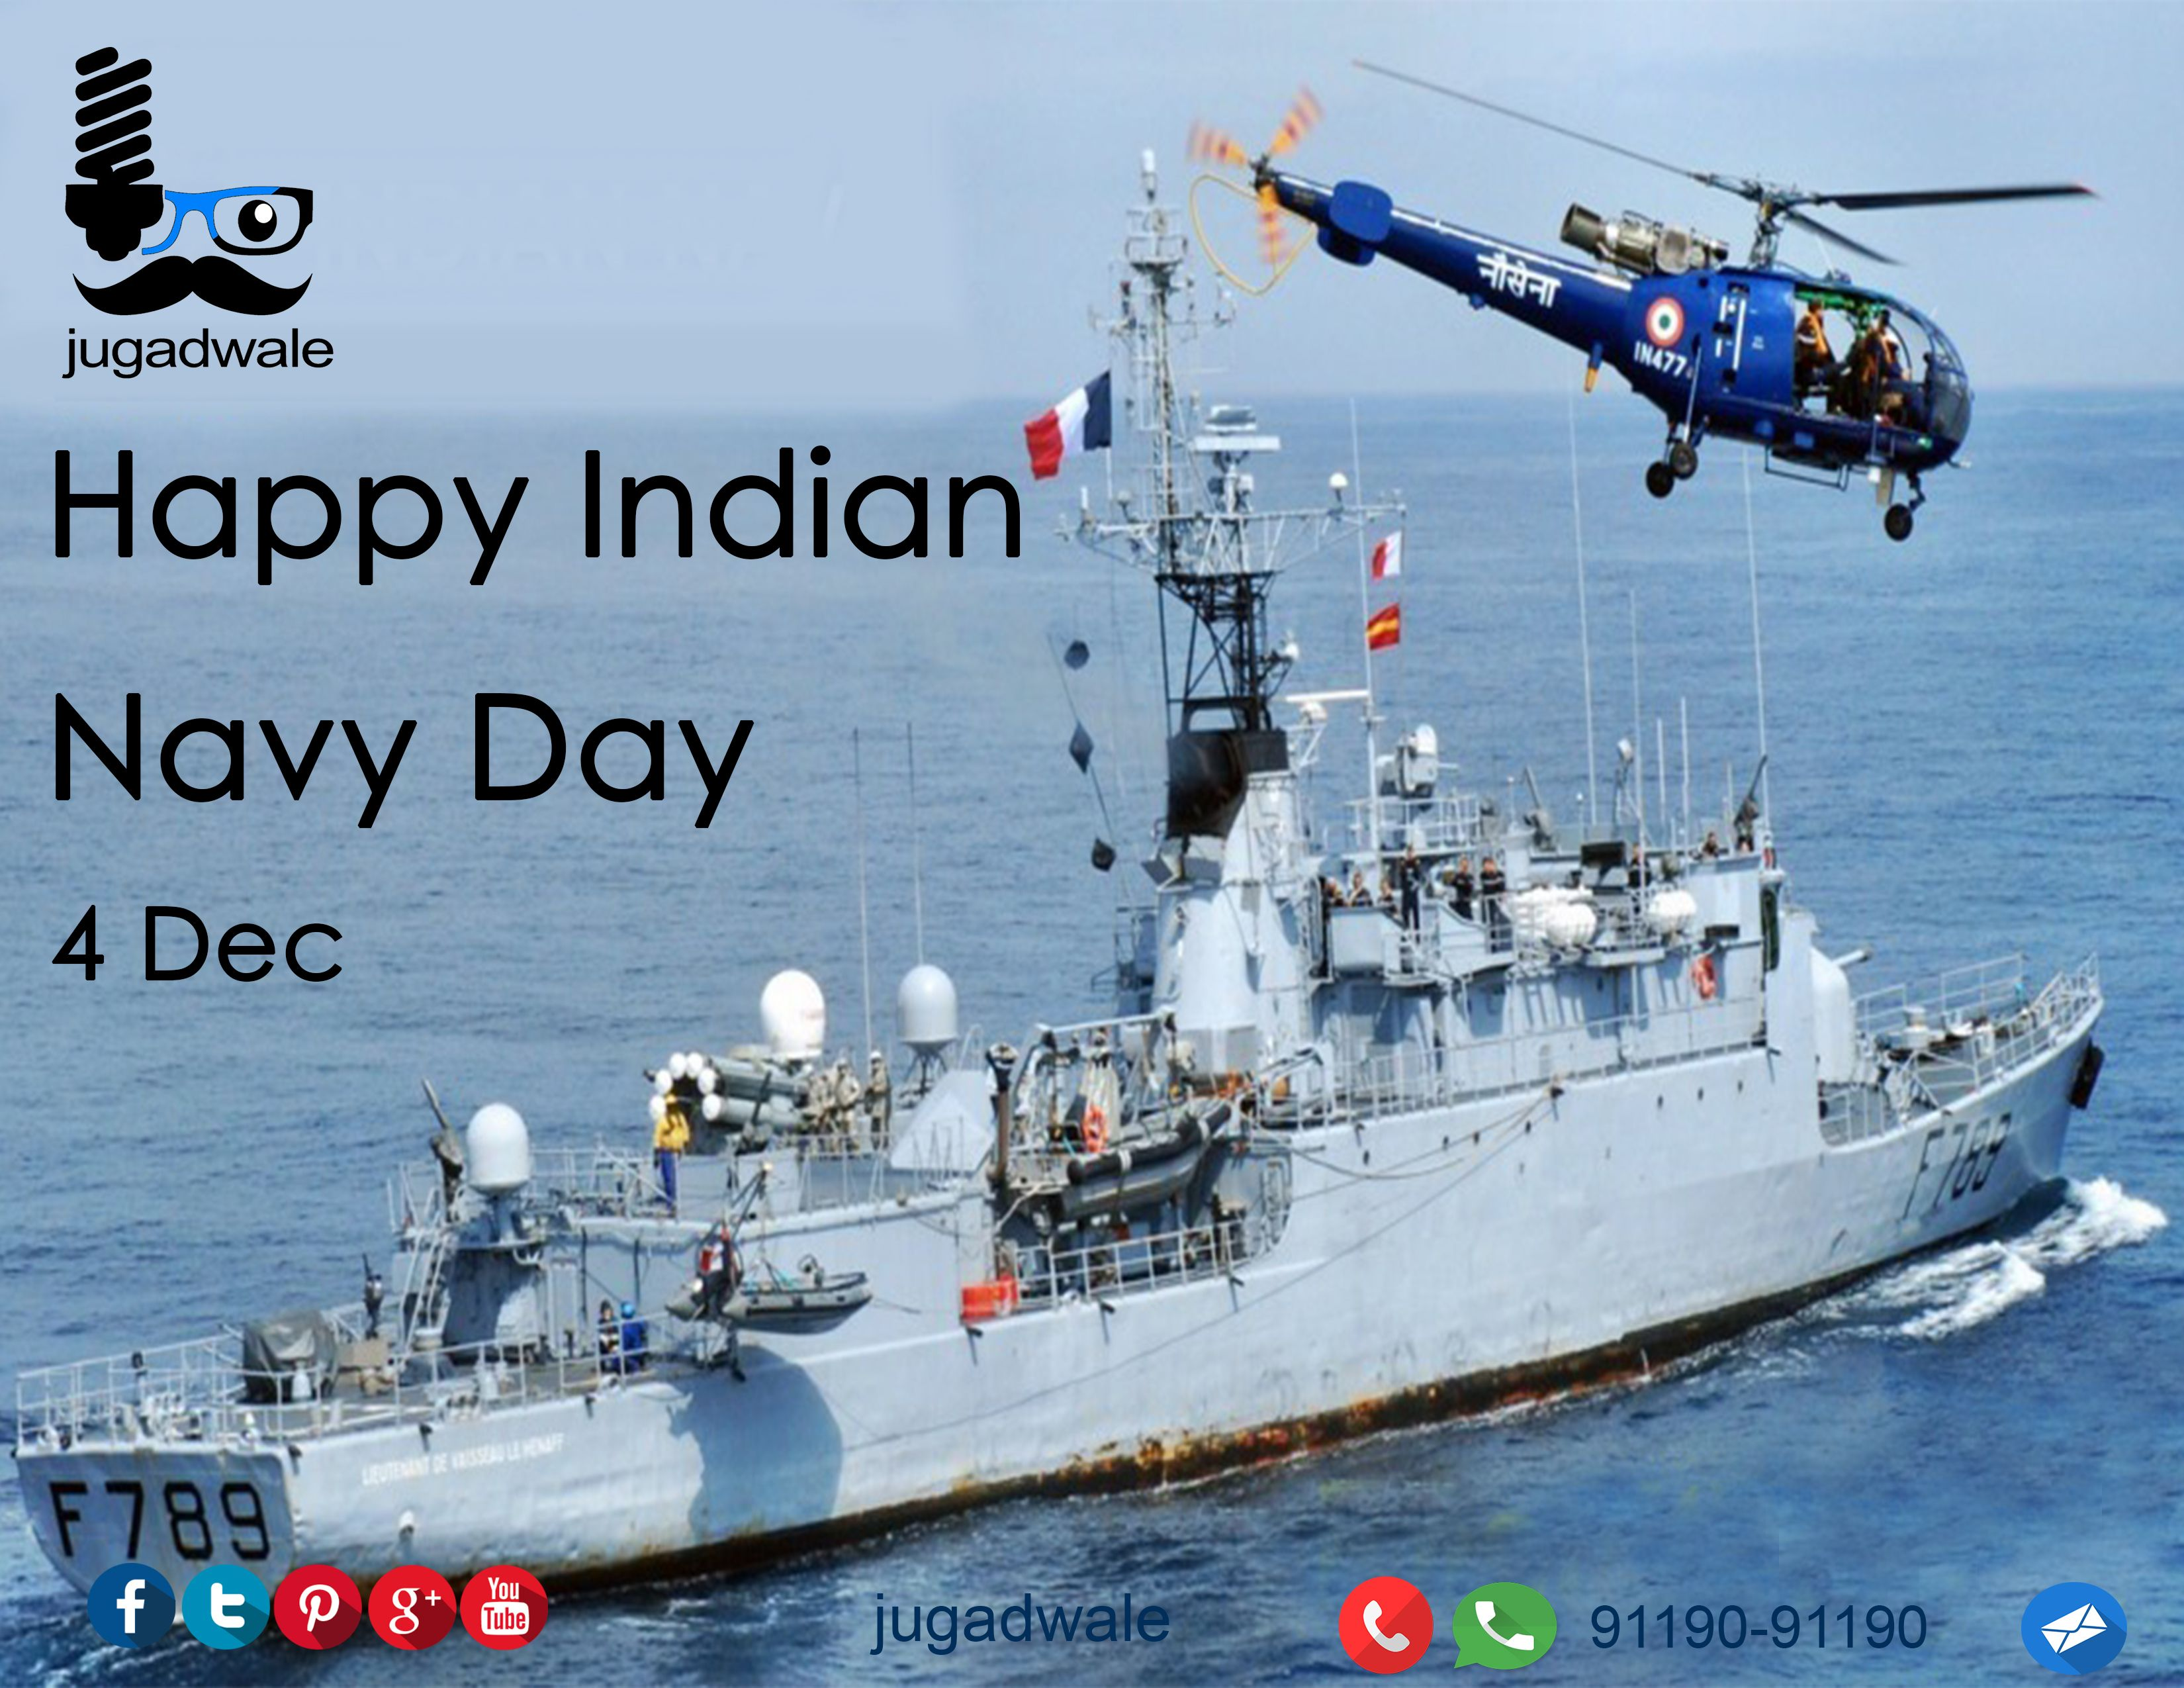 Jugadwale Salutes Our Navy On Navy Day Indiannavyday Indian Navy Day Navy Day Indian Navy